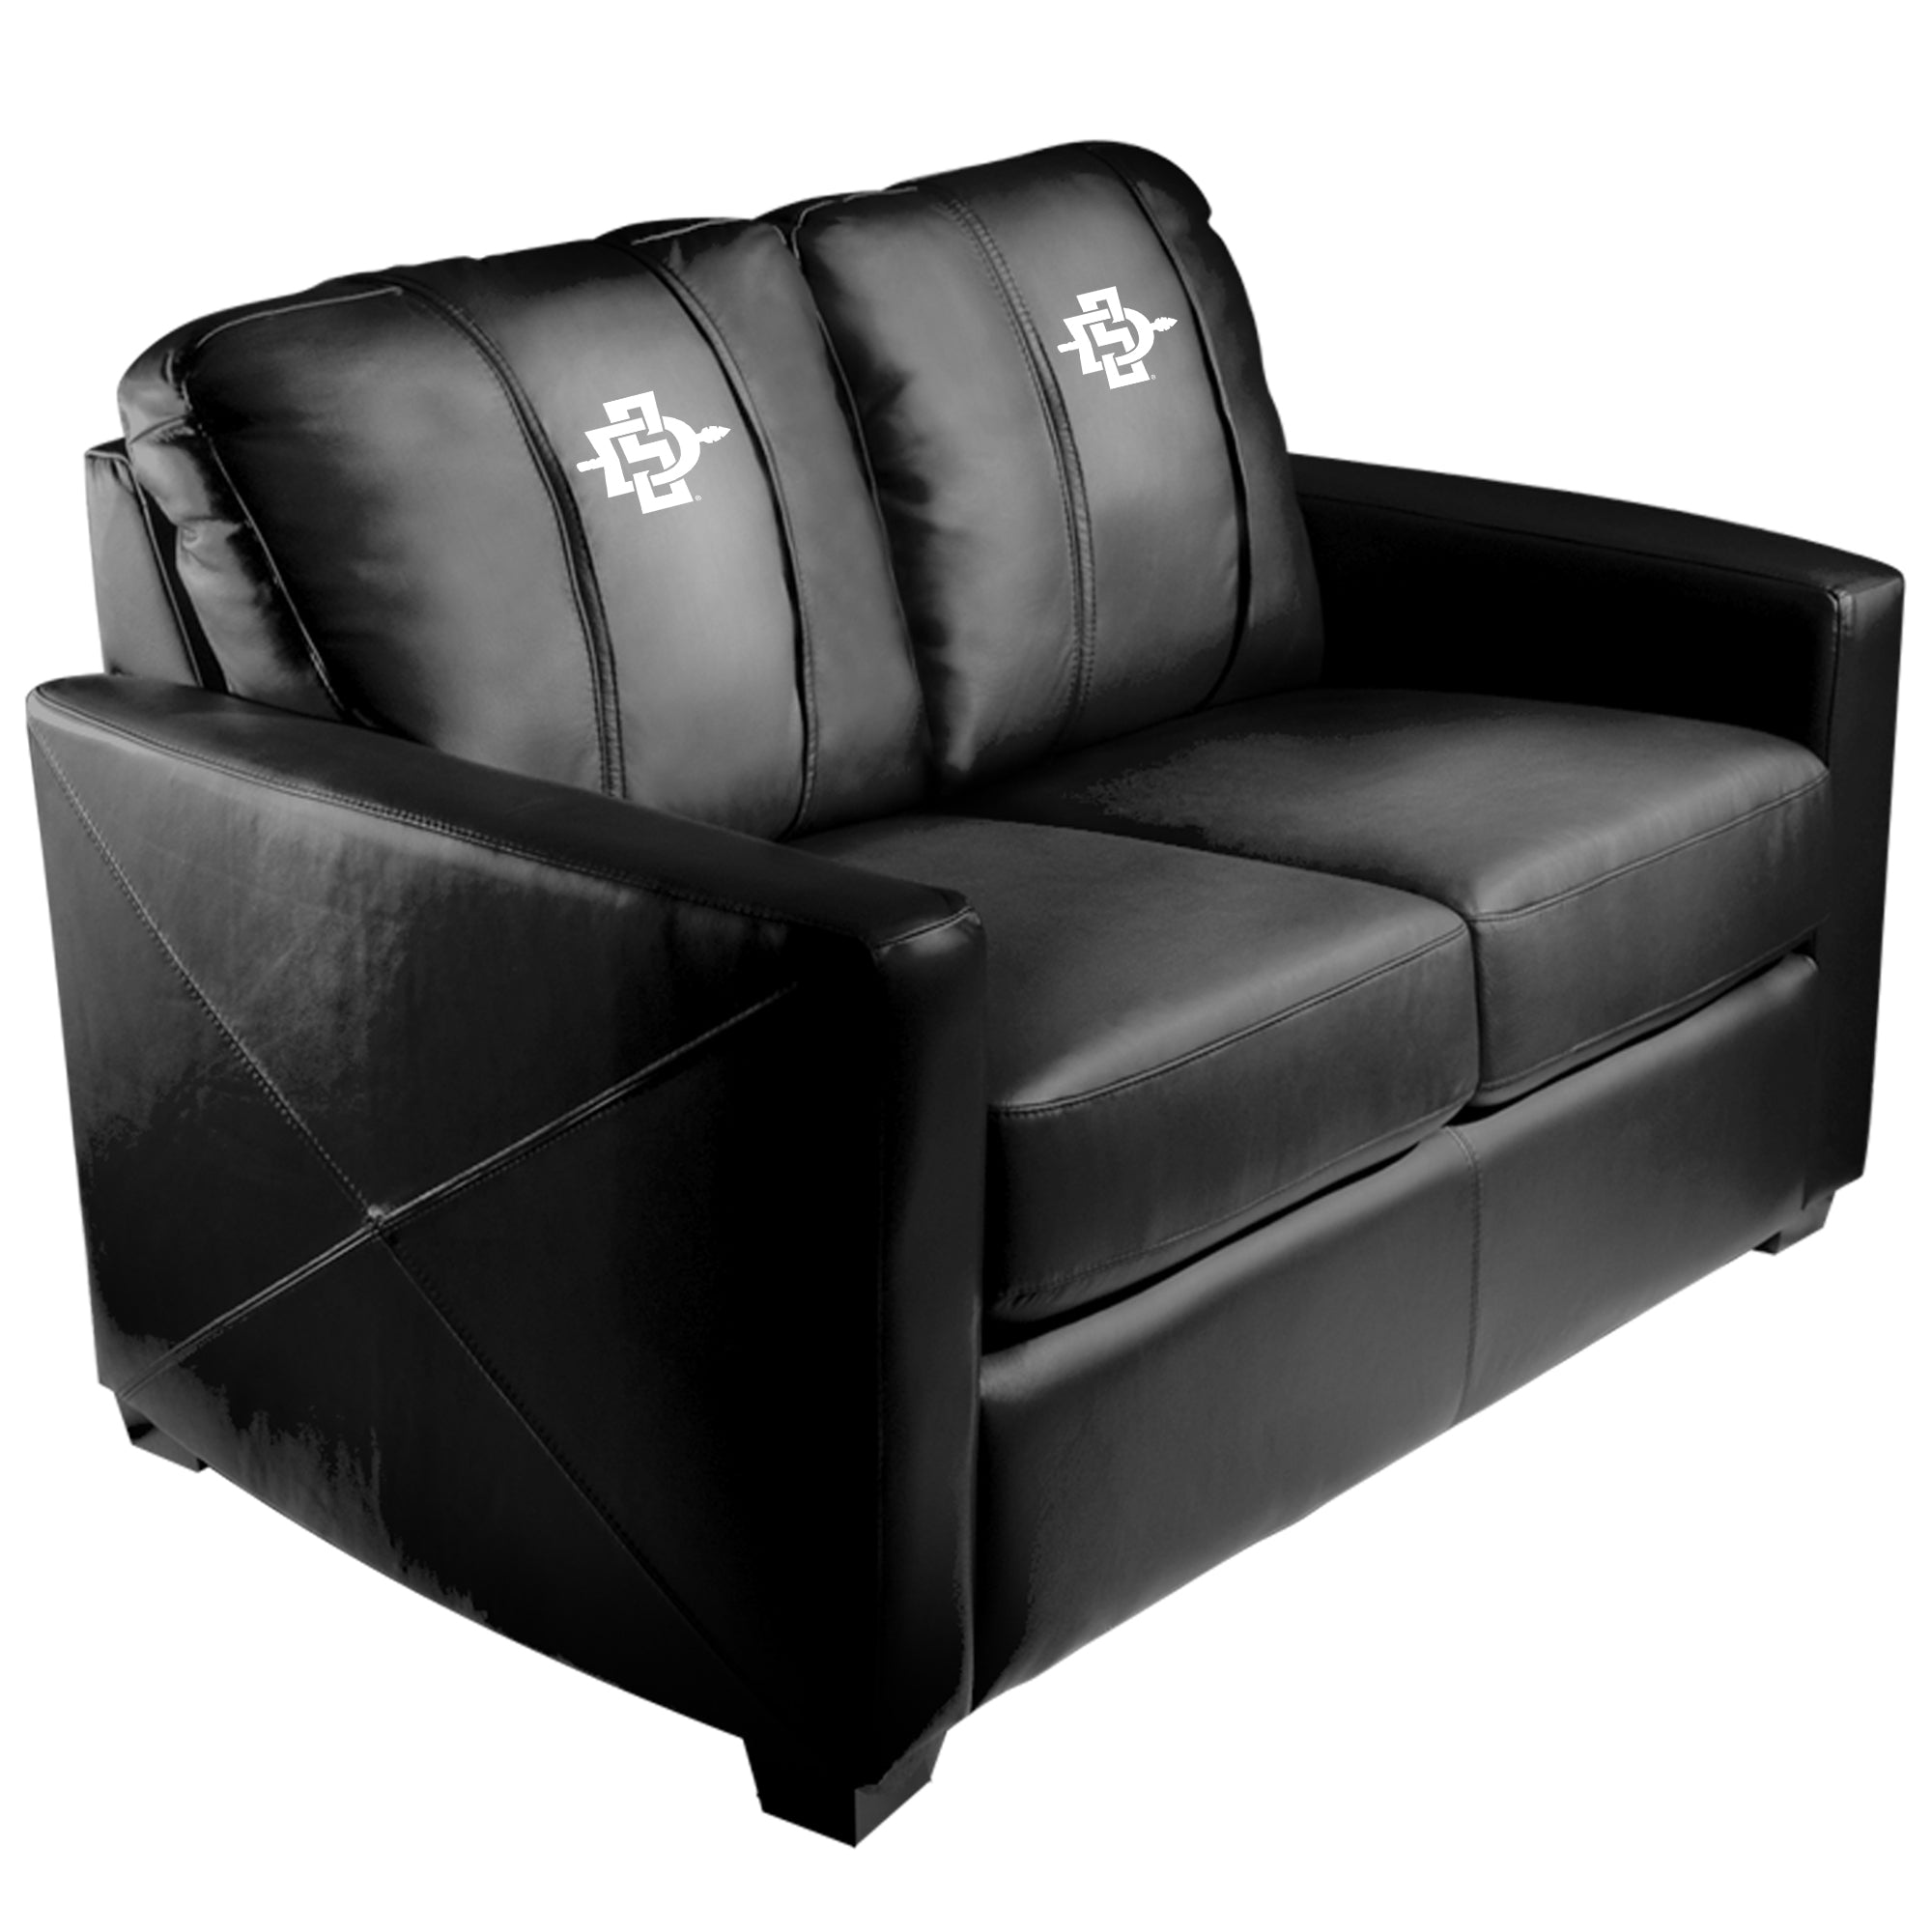 Silver Loveseat with San Diego State Alternate